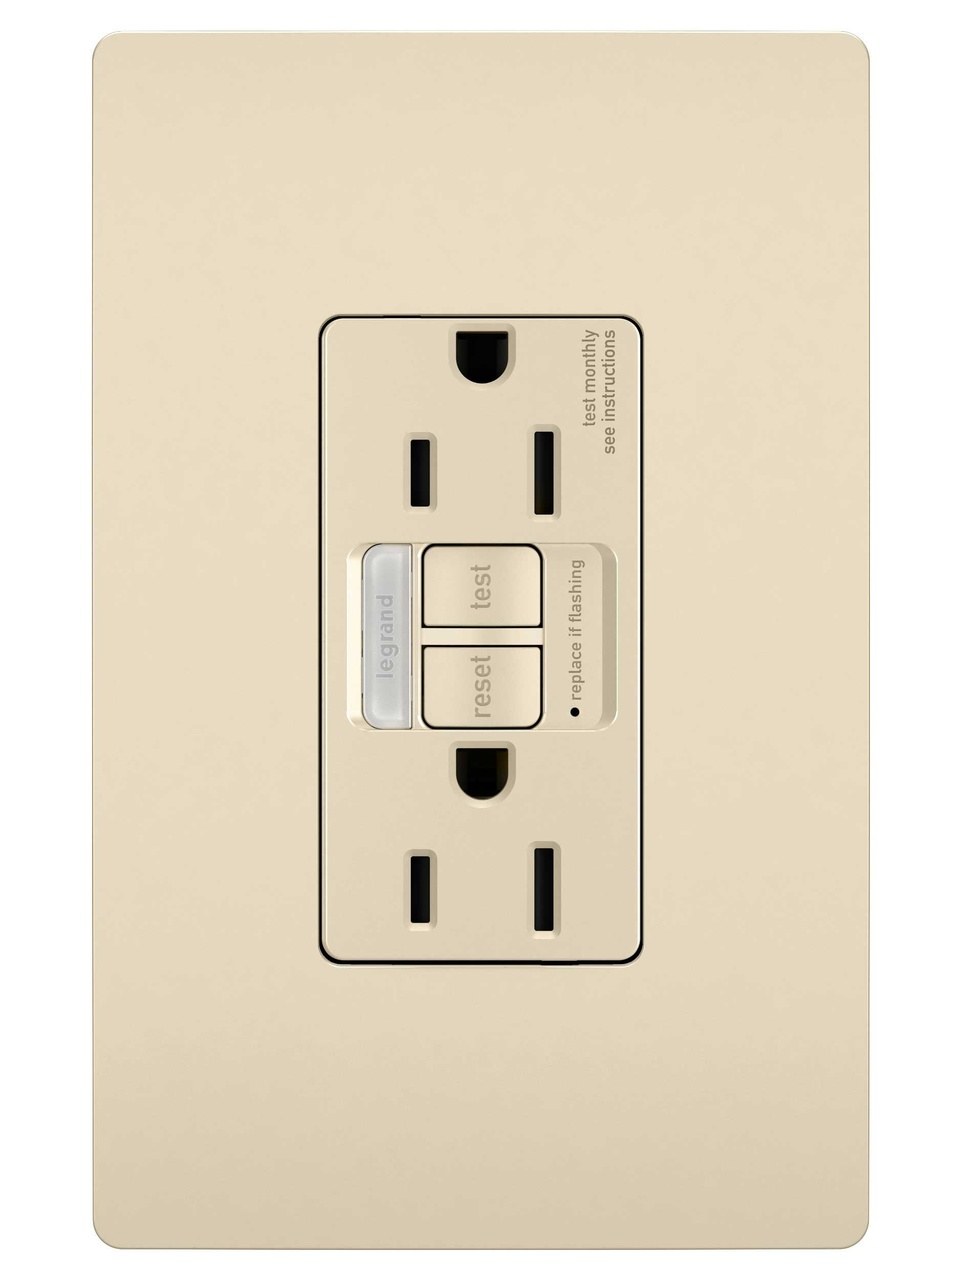 Outlets by legrand combination tamper resistant 15a self test night lightgfci light almond mozeypictures Image collections